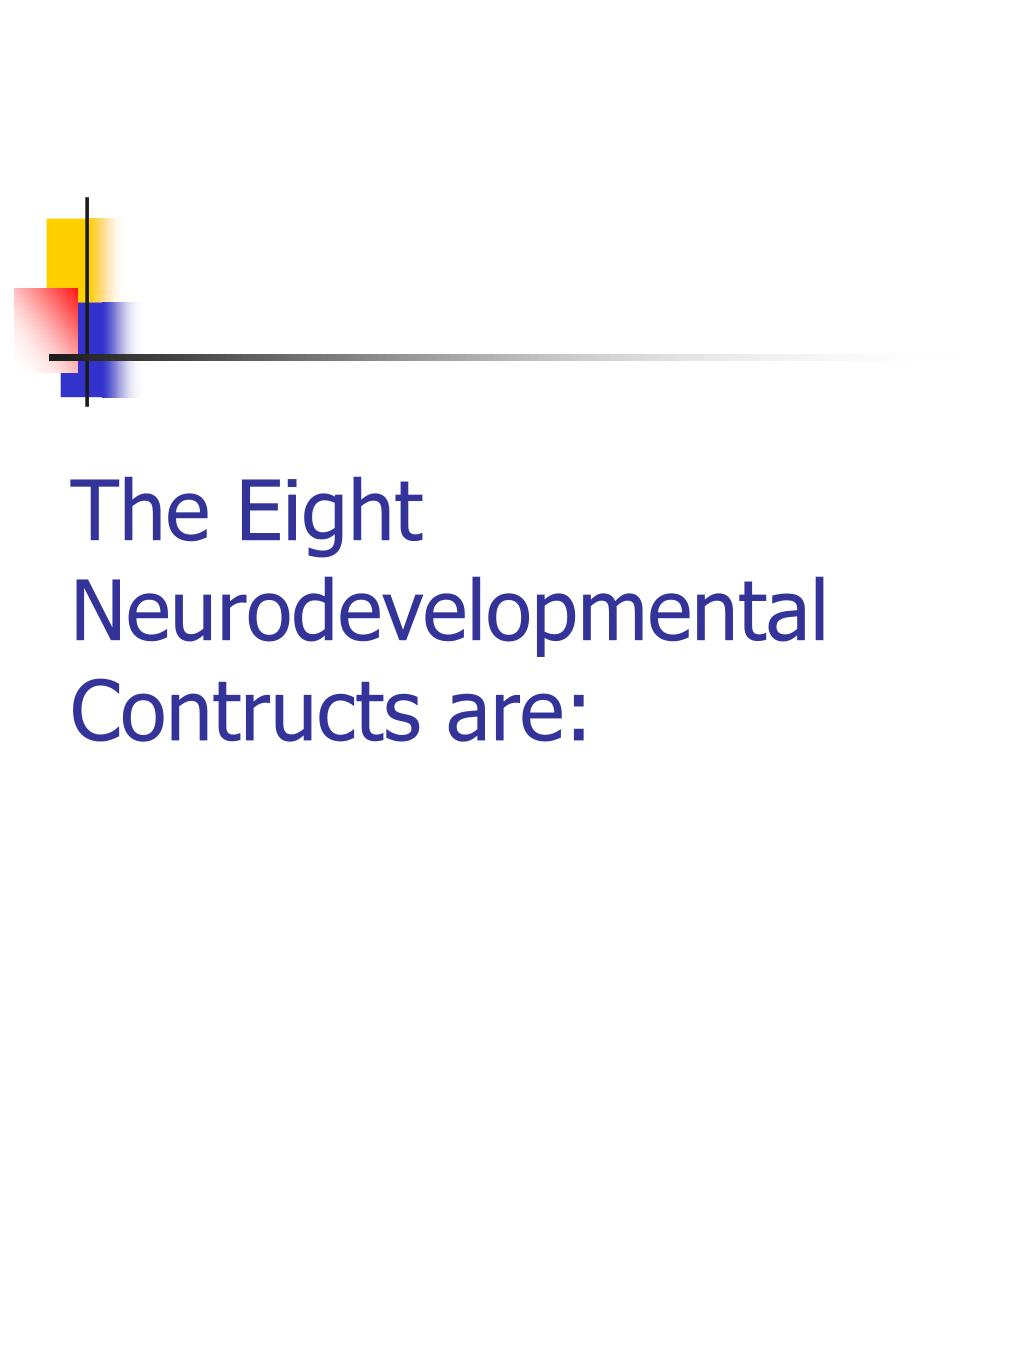 The Eight Neurodevelopmental Contructs are: